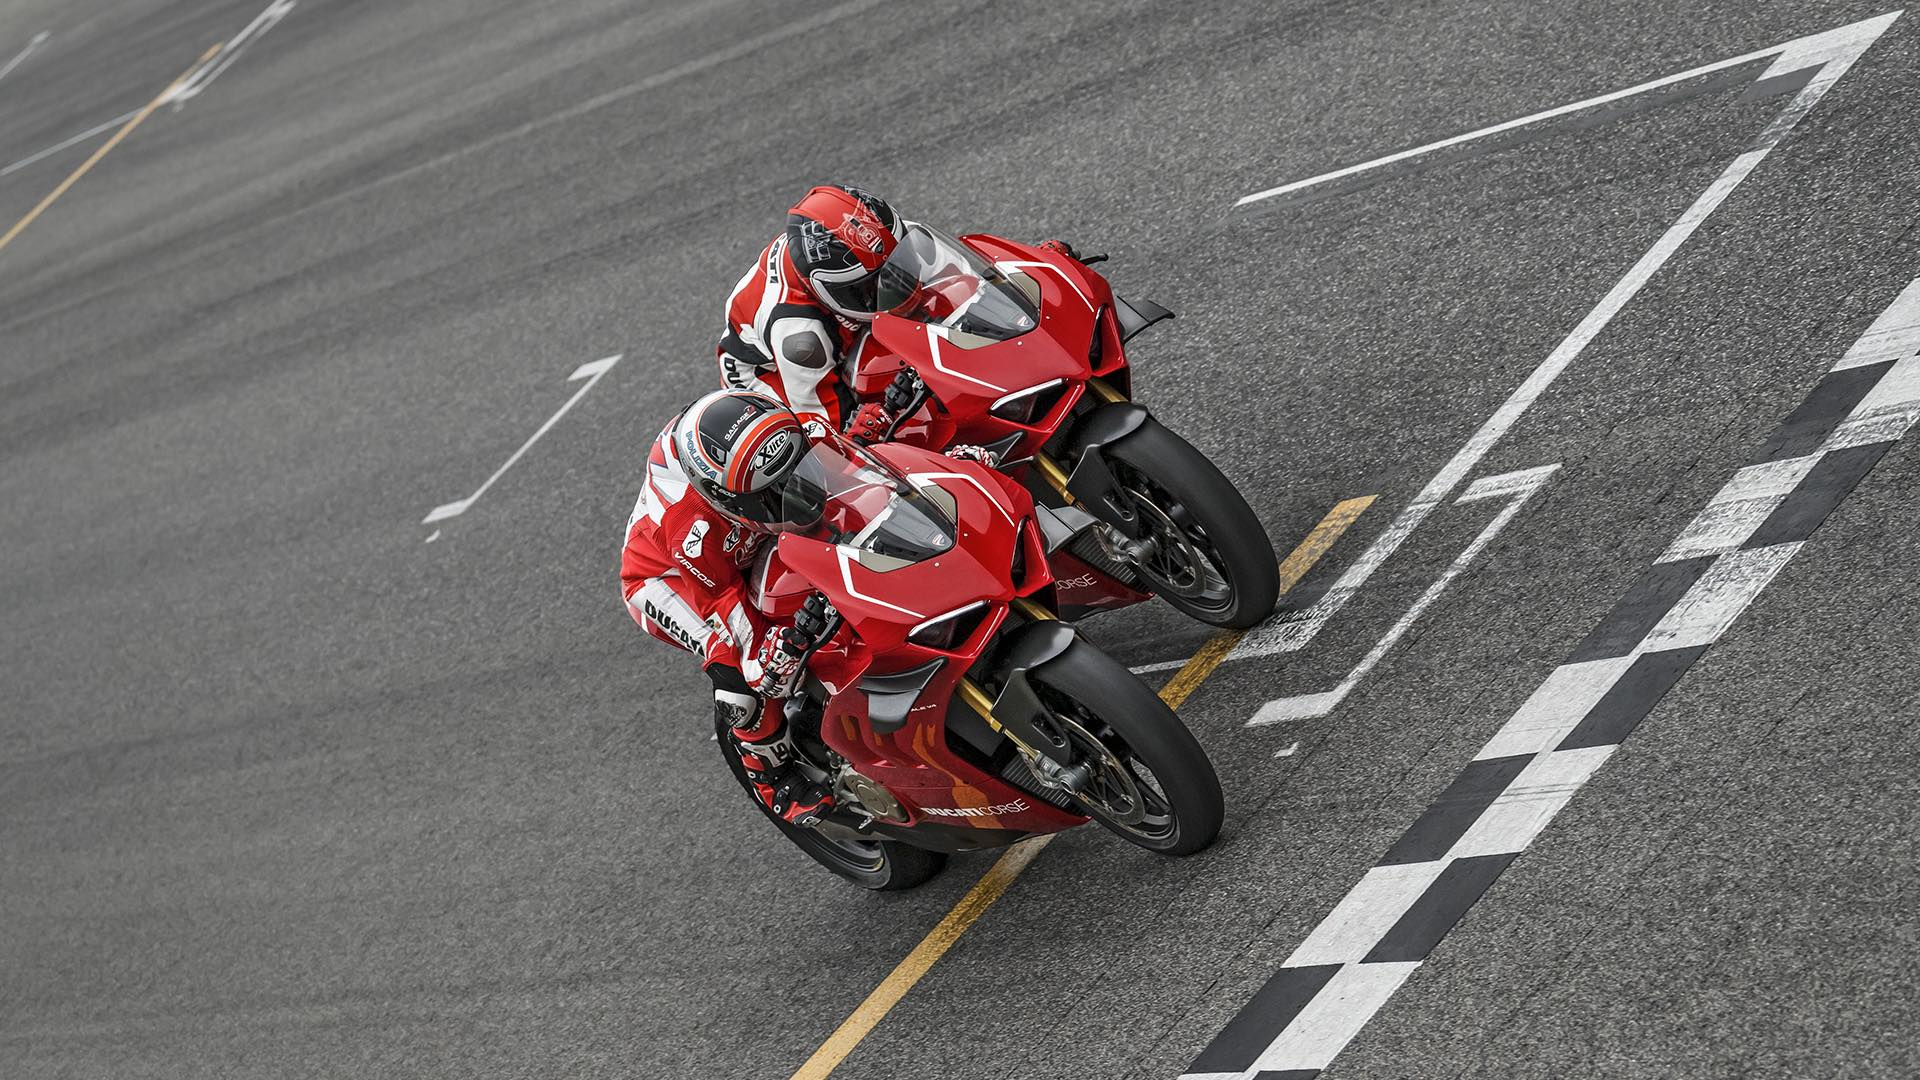 READY FOR WORLD SBK DUCATI PANIGALE V4-R